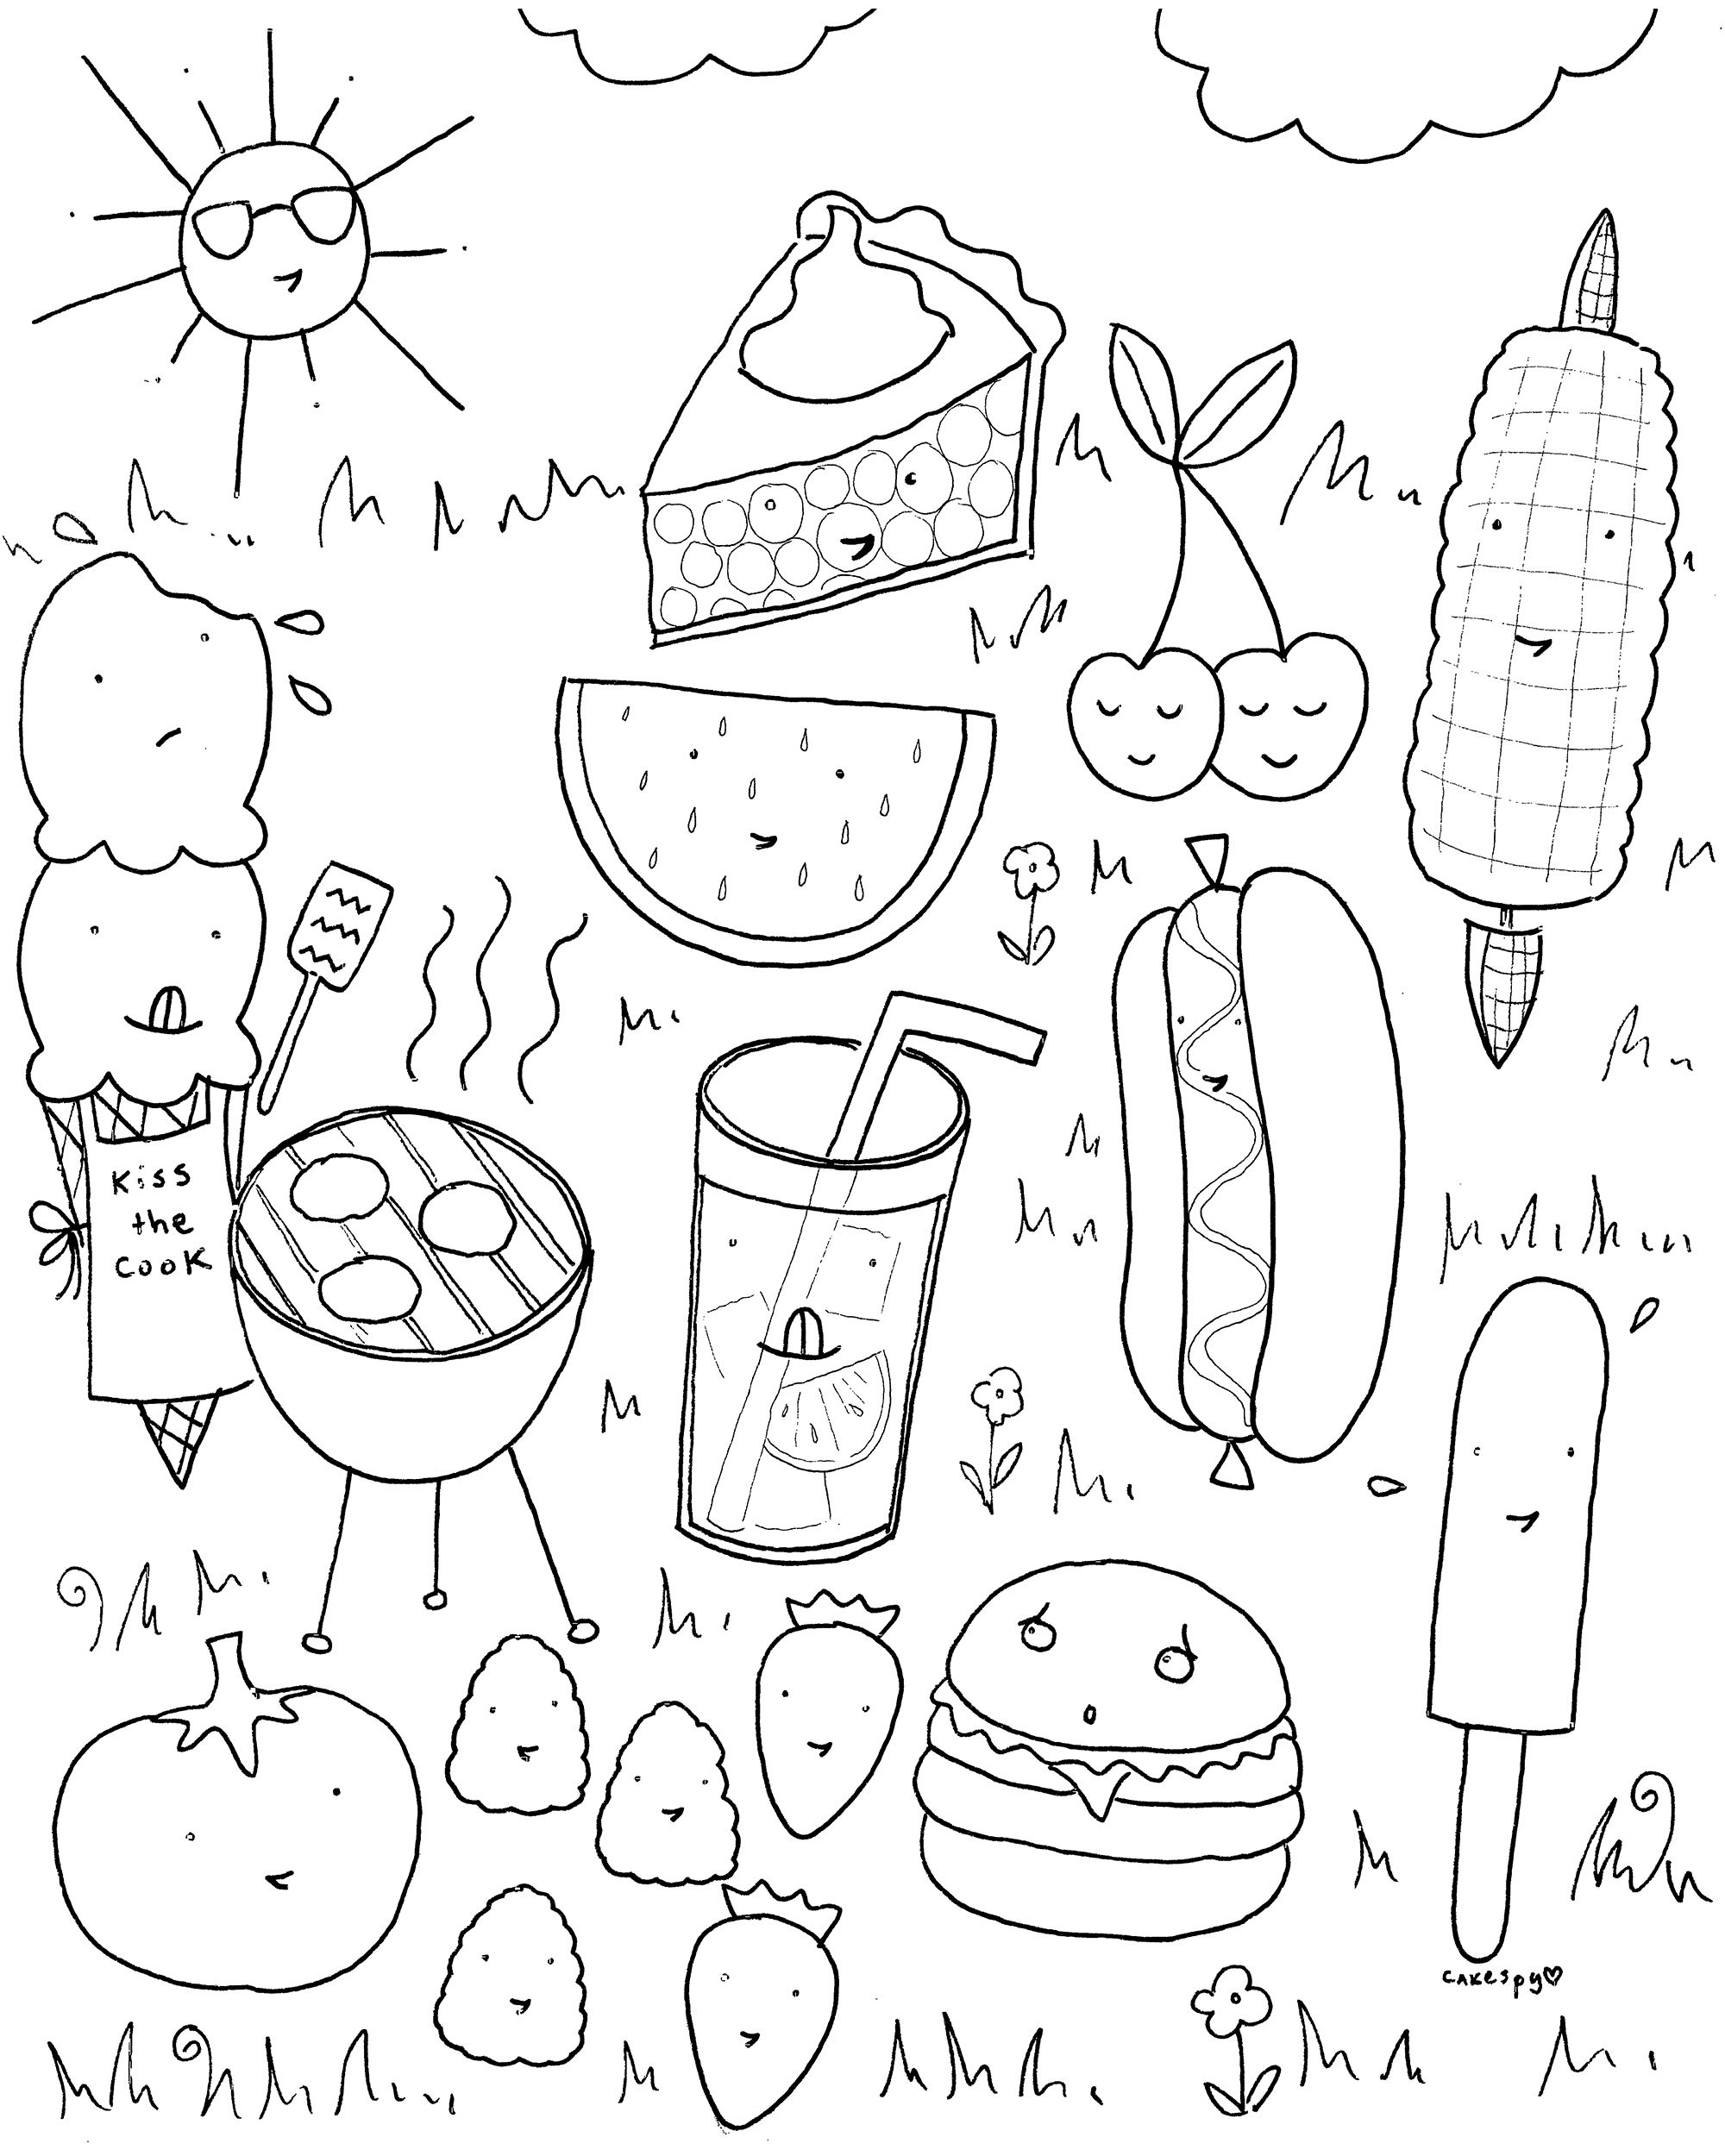 free downloadable summer fun coloring book pages - Fun Coloring Sheets